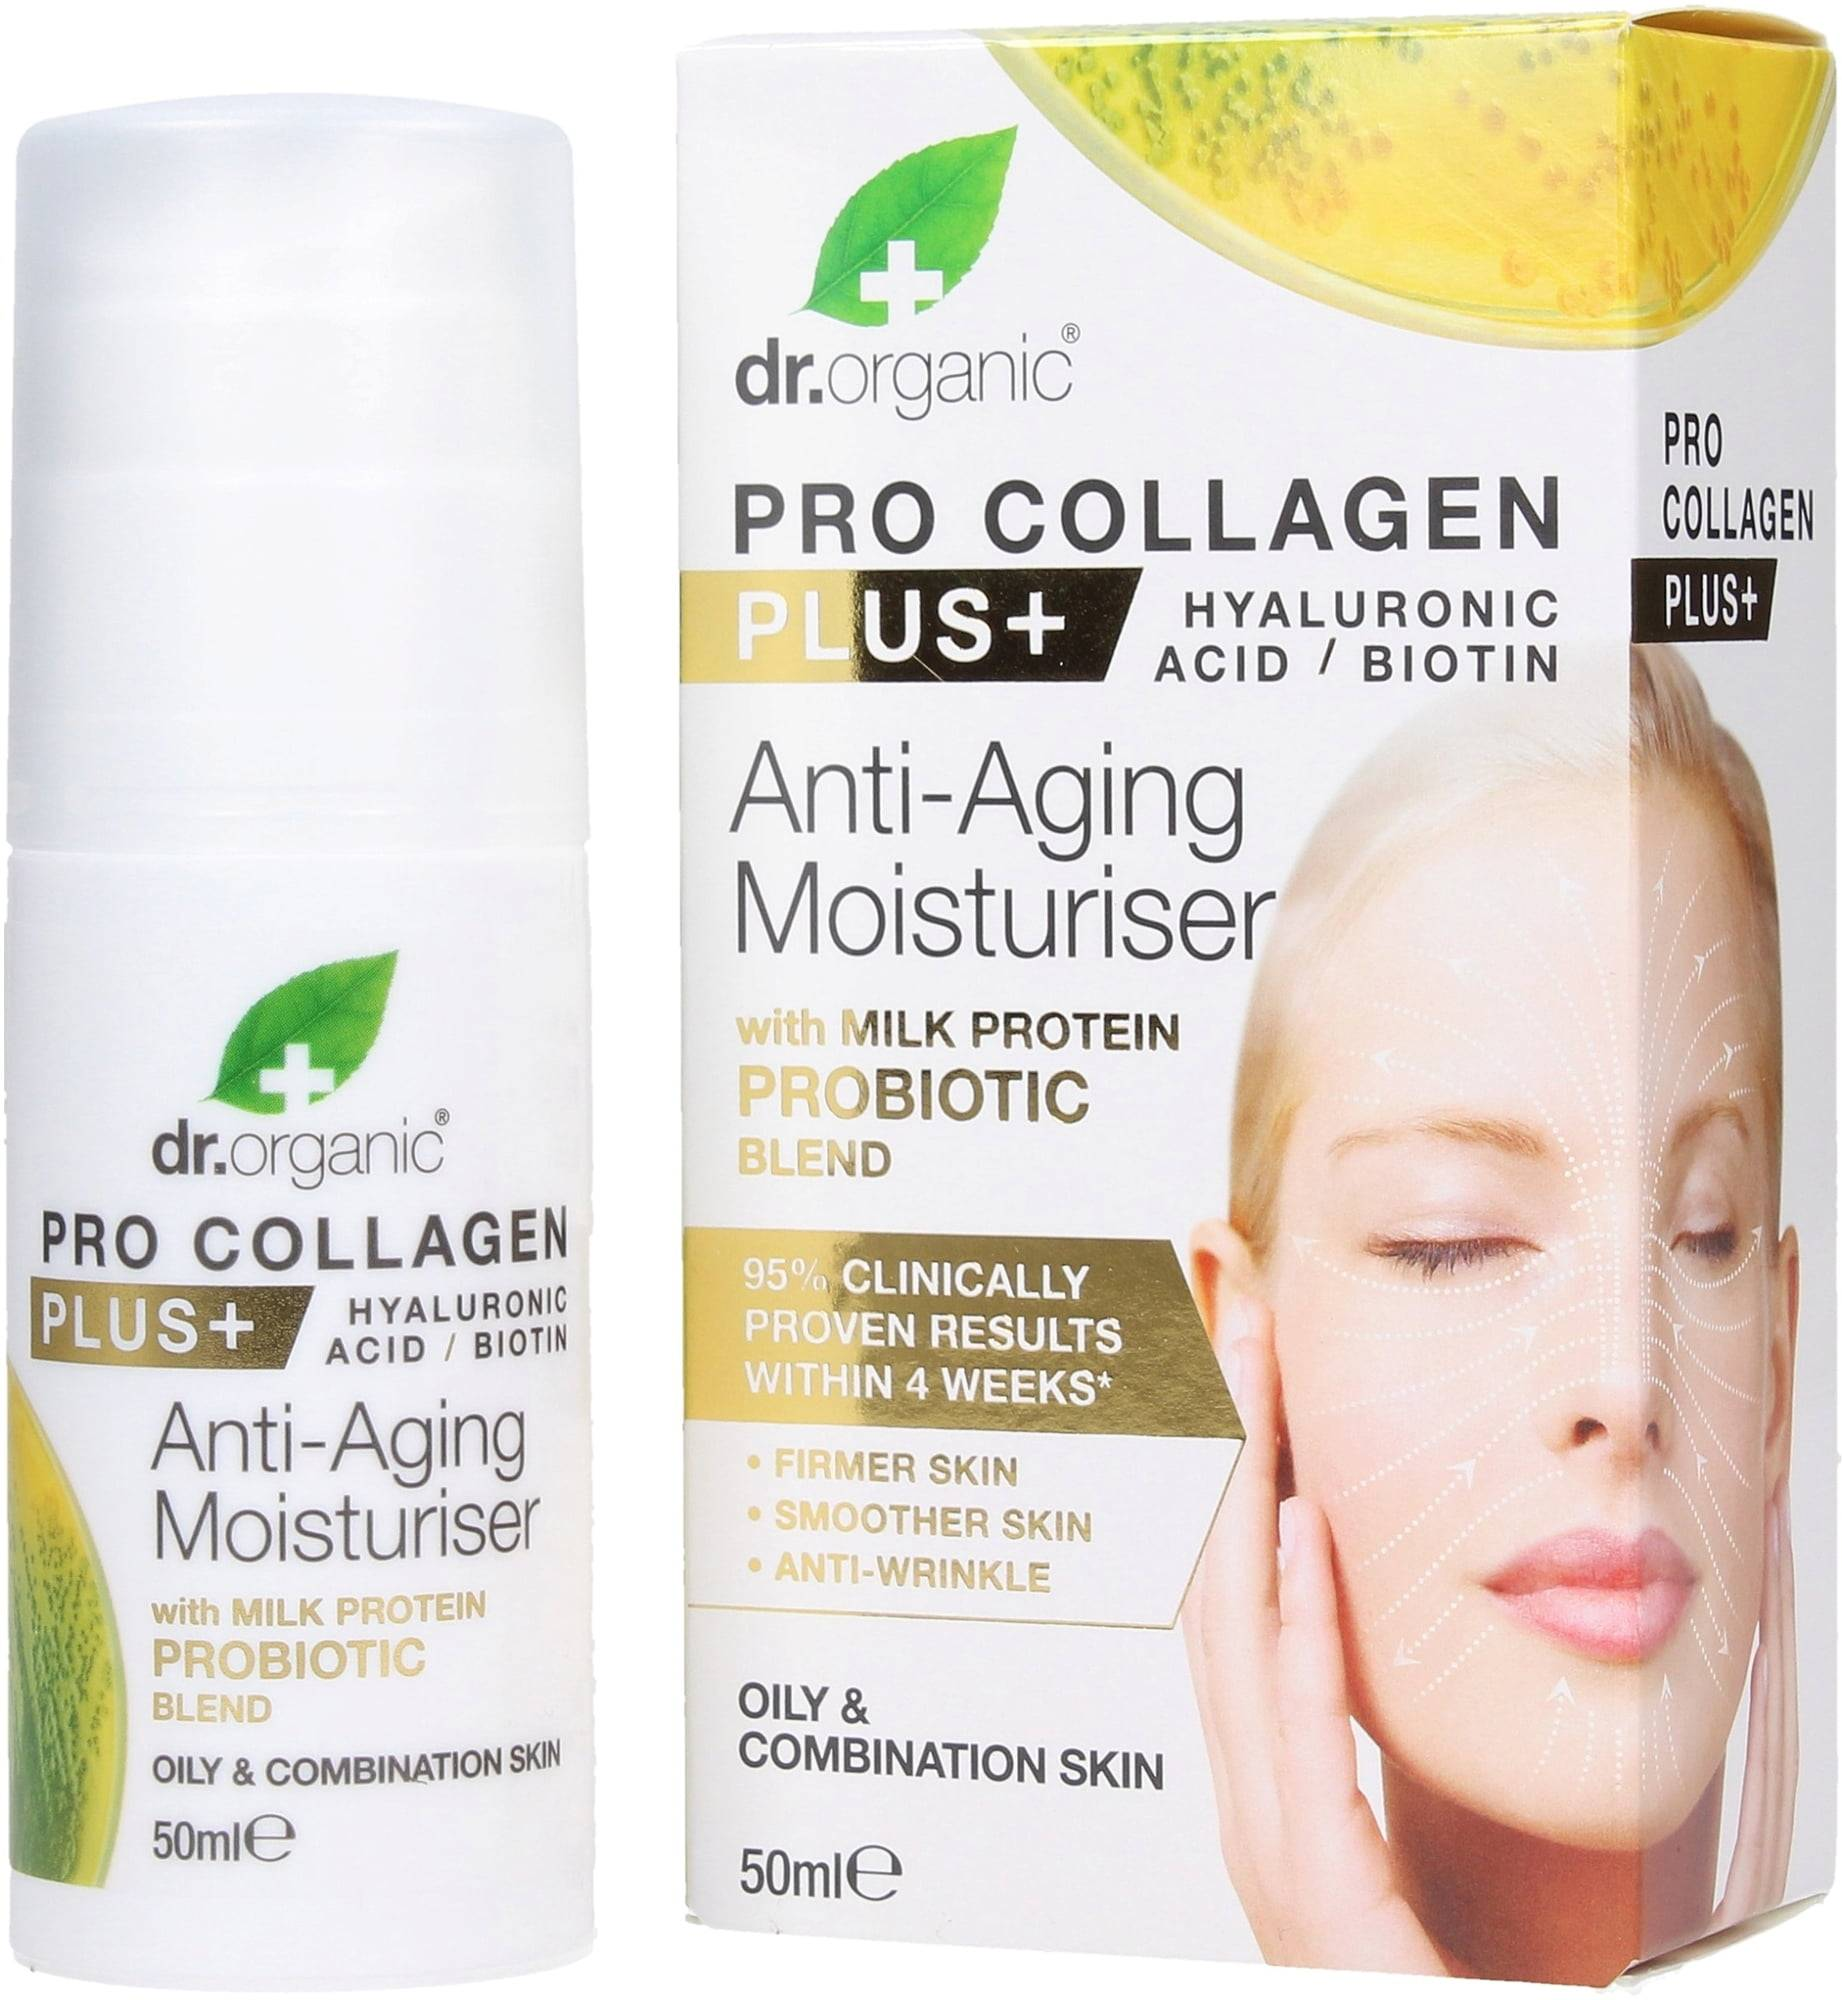 Dr. Organic Pro Collagen Plus Milk Protein Probiotic Anti-Aging kosteuttaja - 50 ml